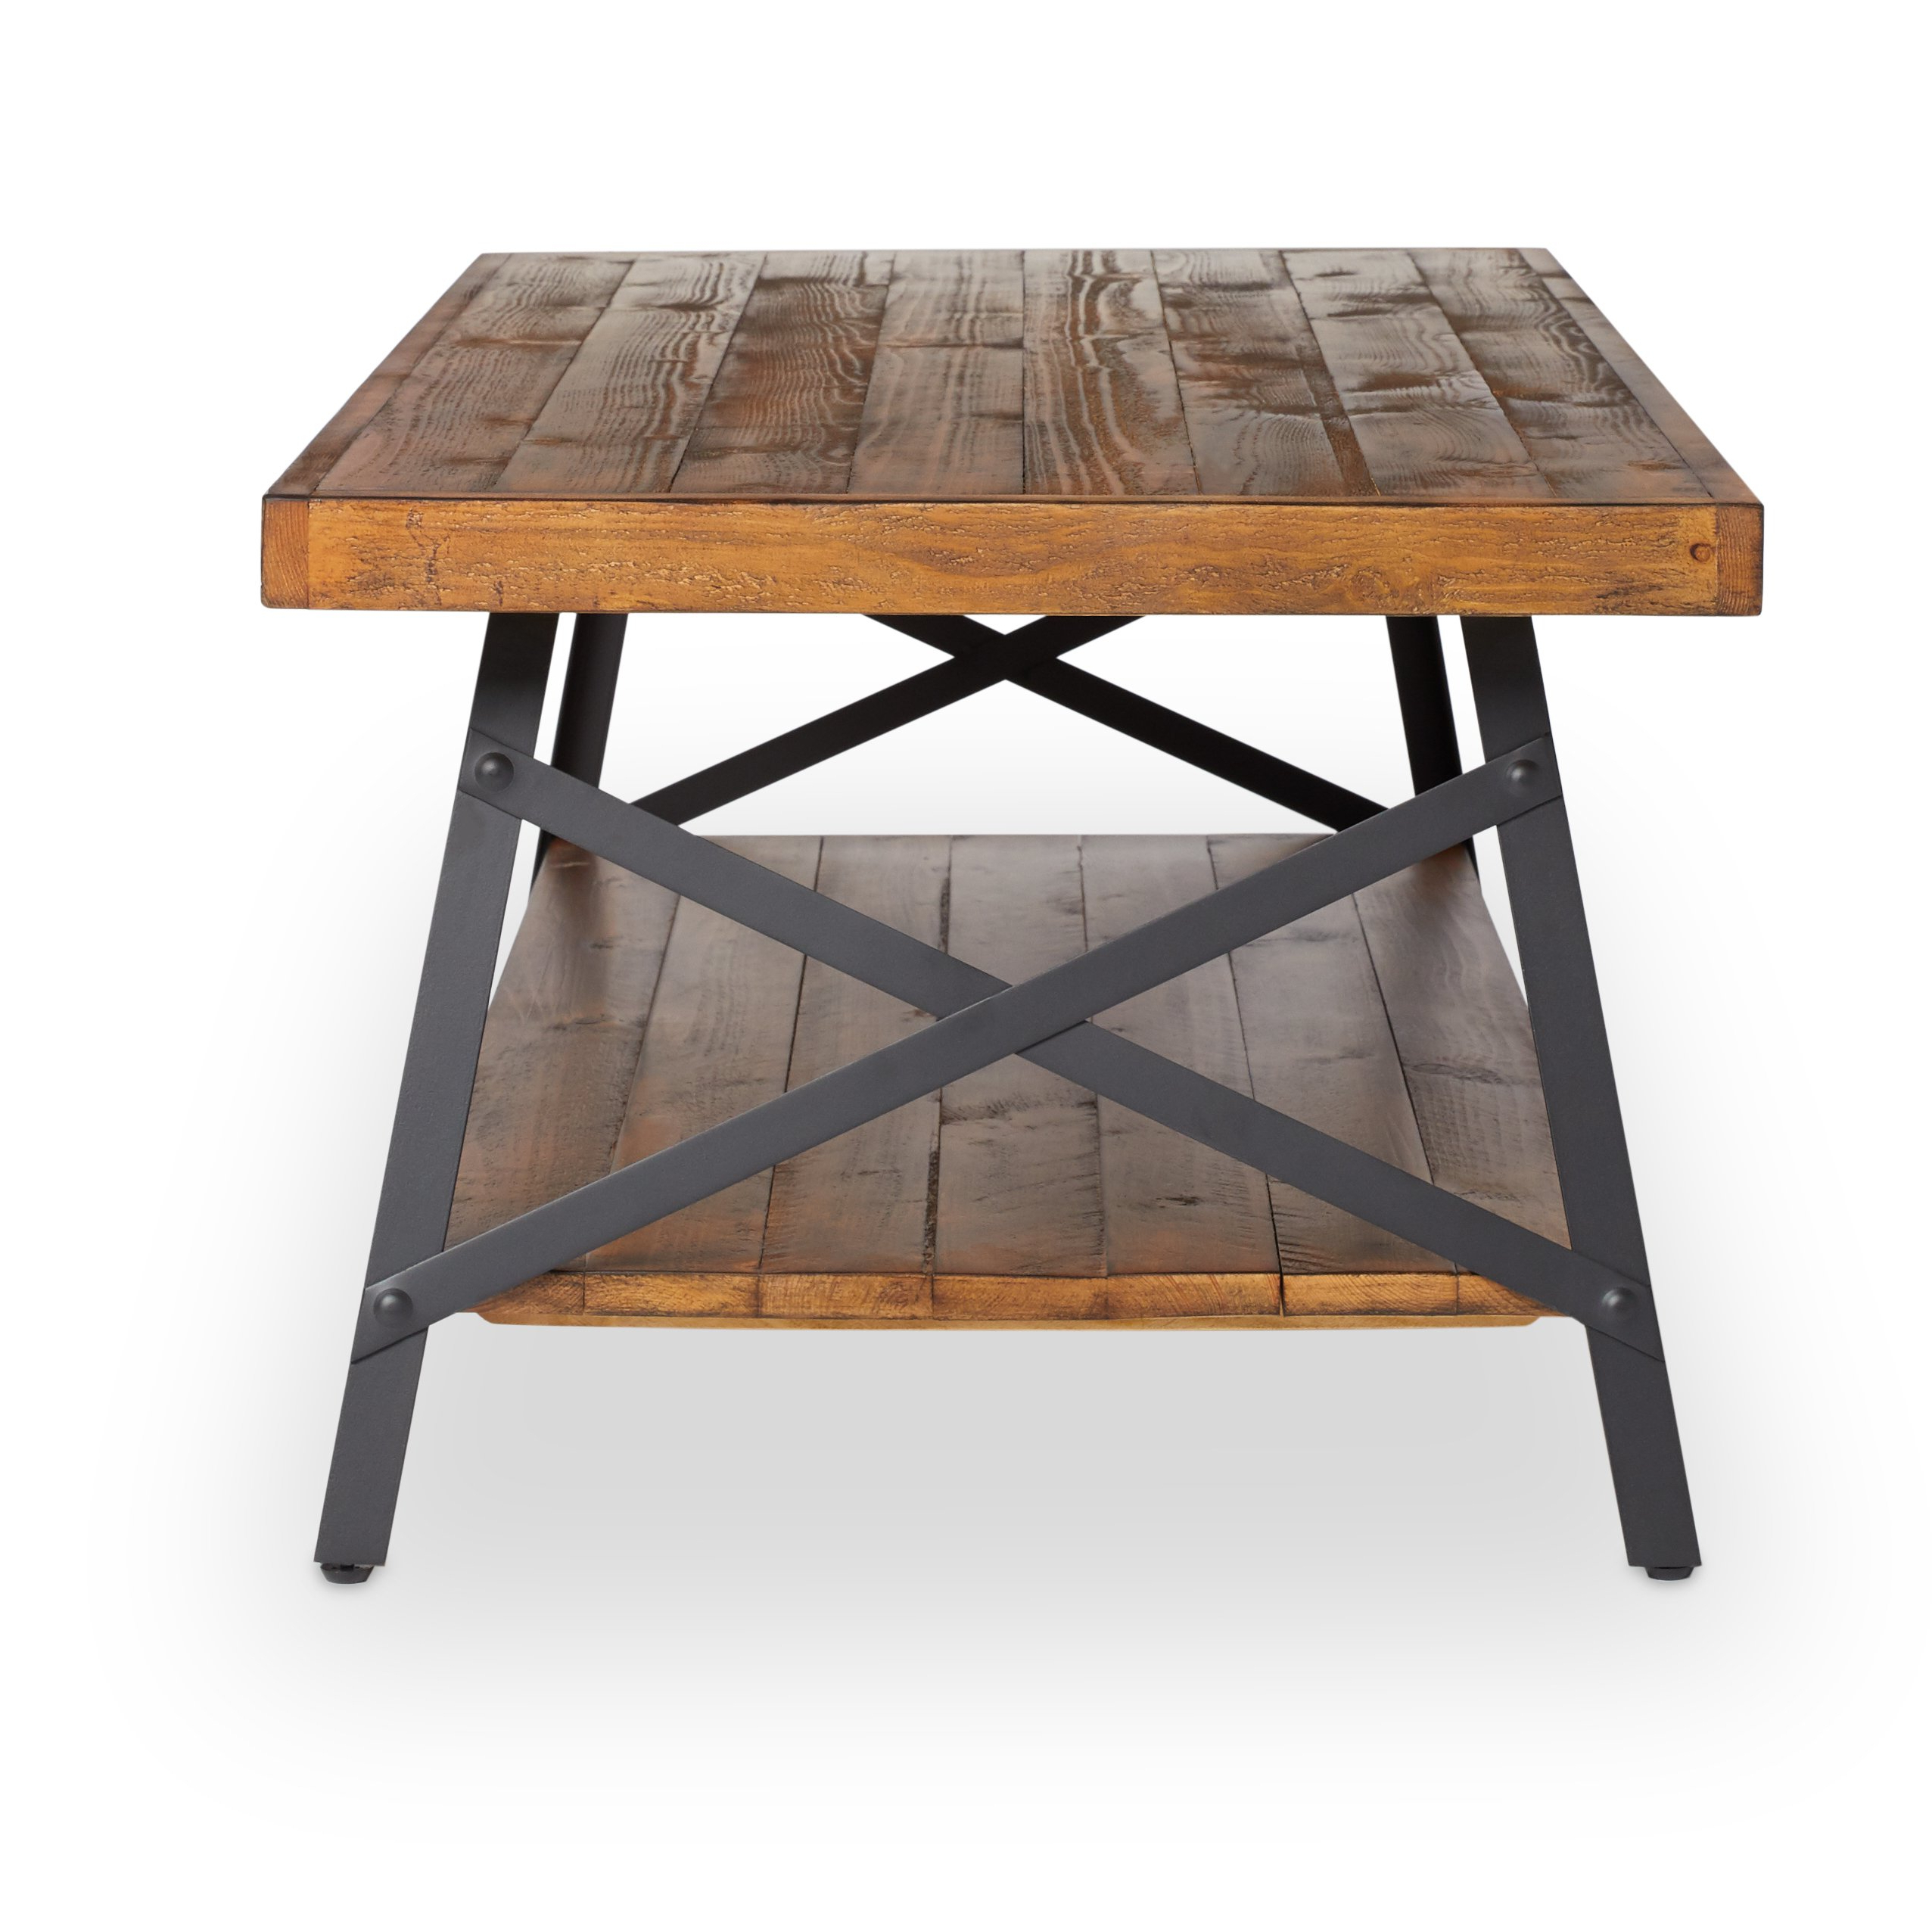 Modern Rustic Coffee Tables Throughout Latest Shop Pine Canopy Kaibab Modern Rustic Wood Coffee Table – Free (View 9 of 20)